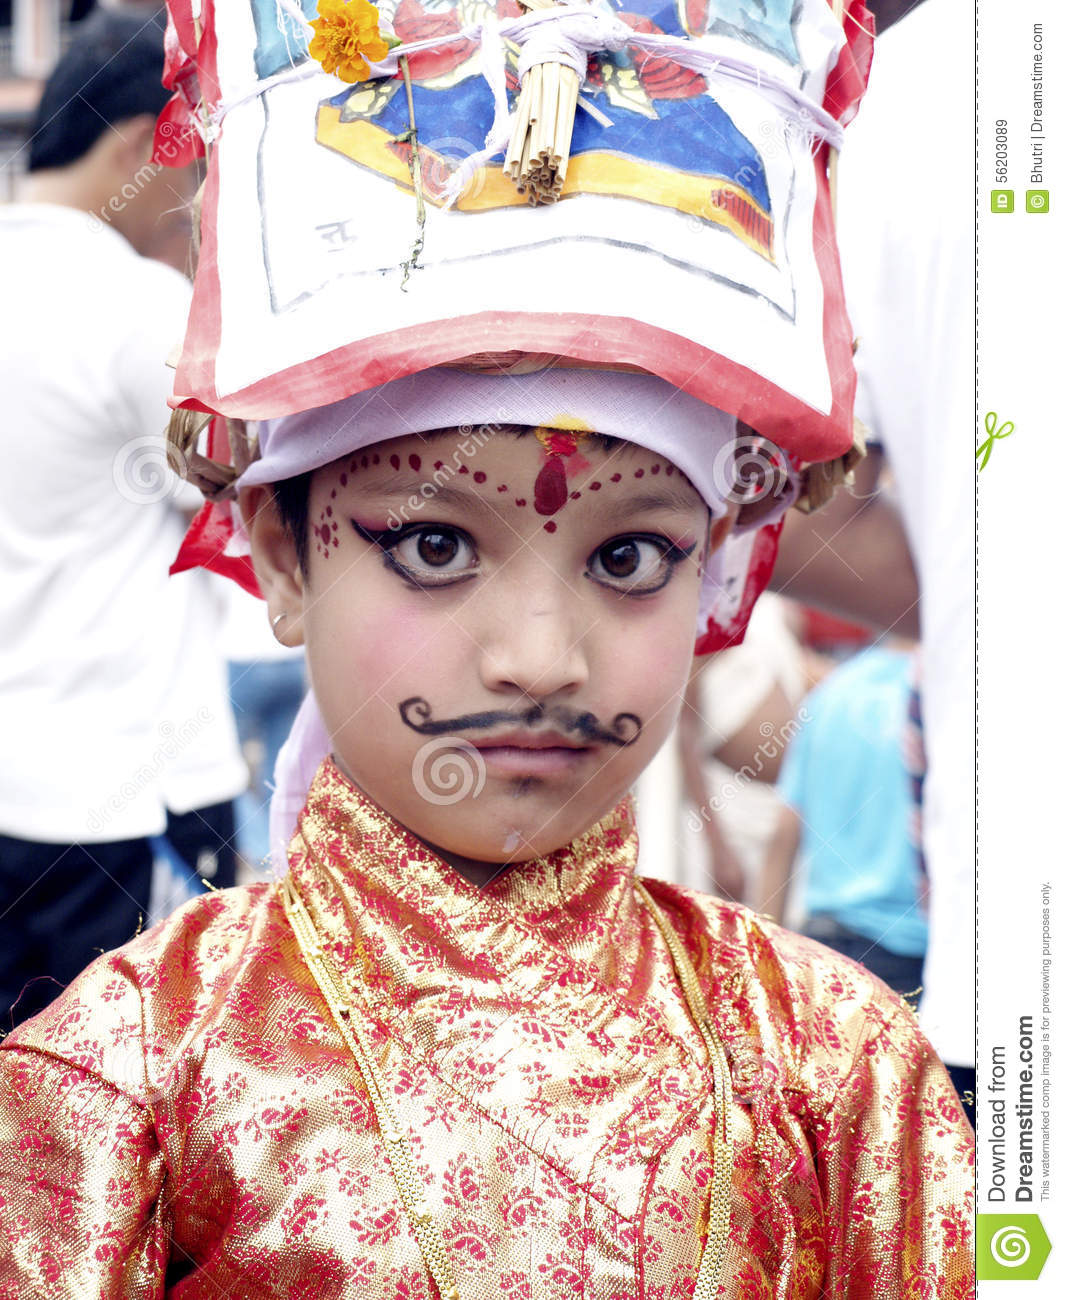 A Young Girl In Festival Of Cows.